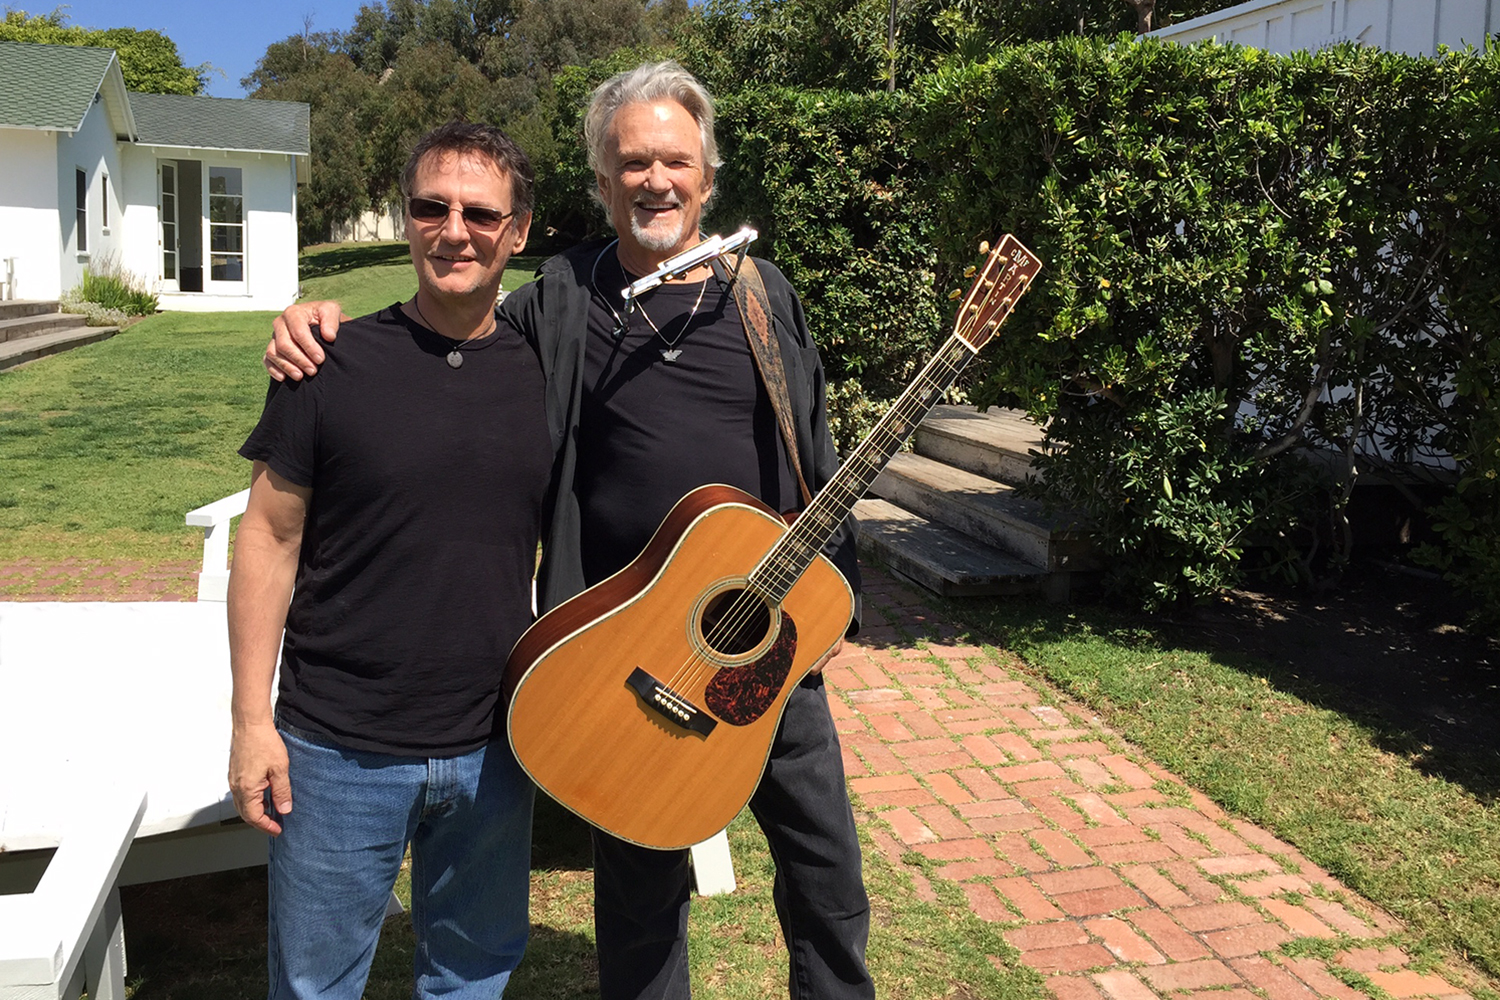 Michael with Kris Kristofferson at Shangri-la Studios in Malibu